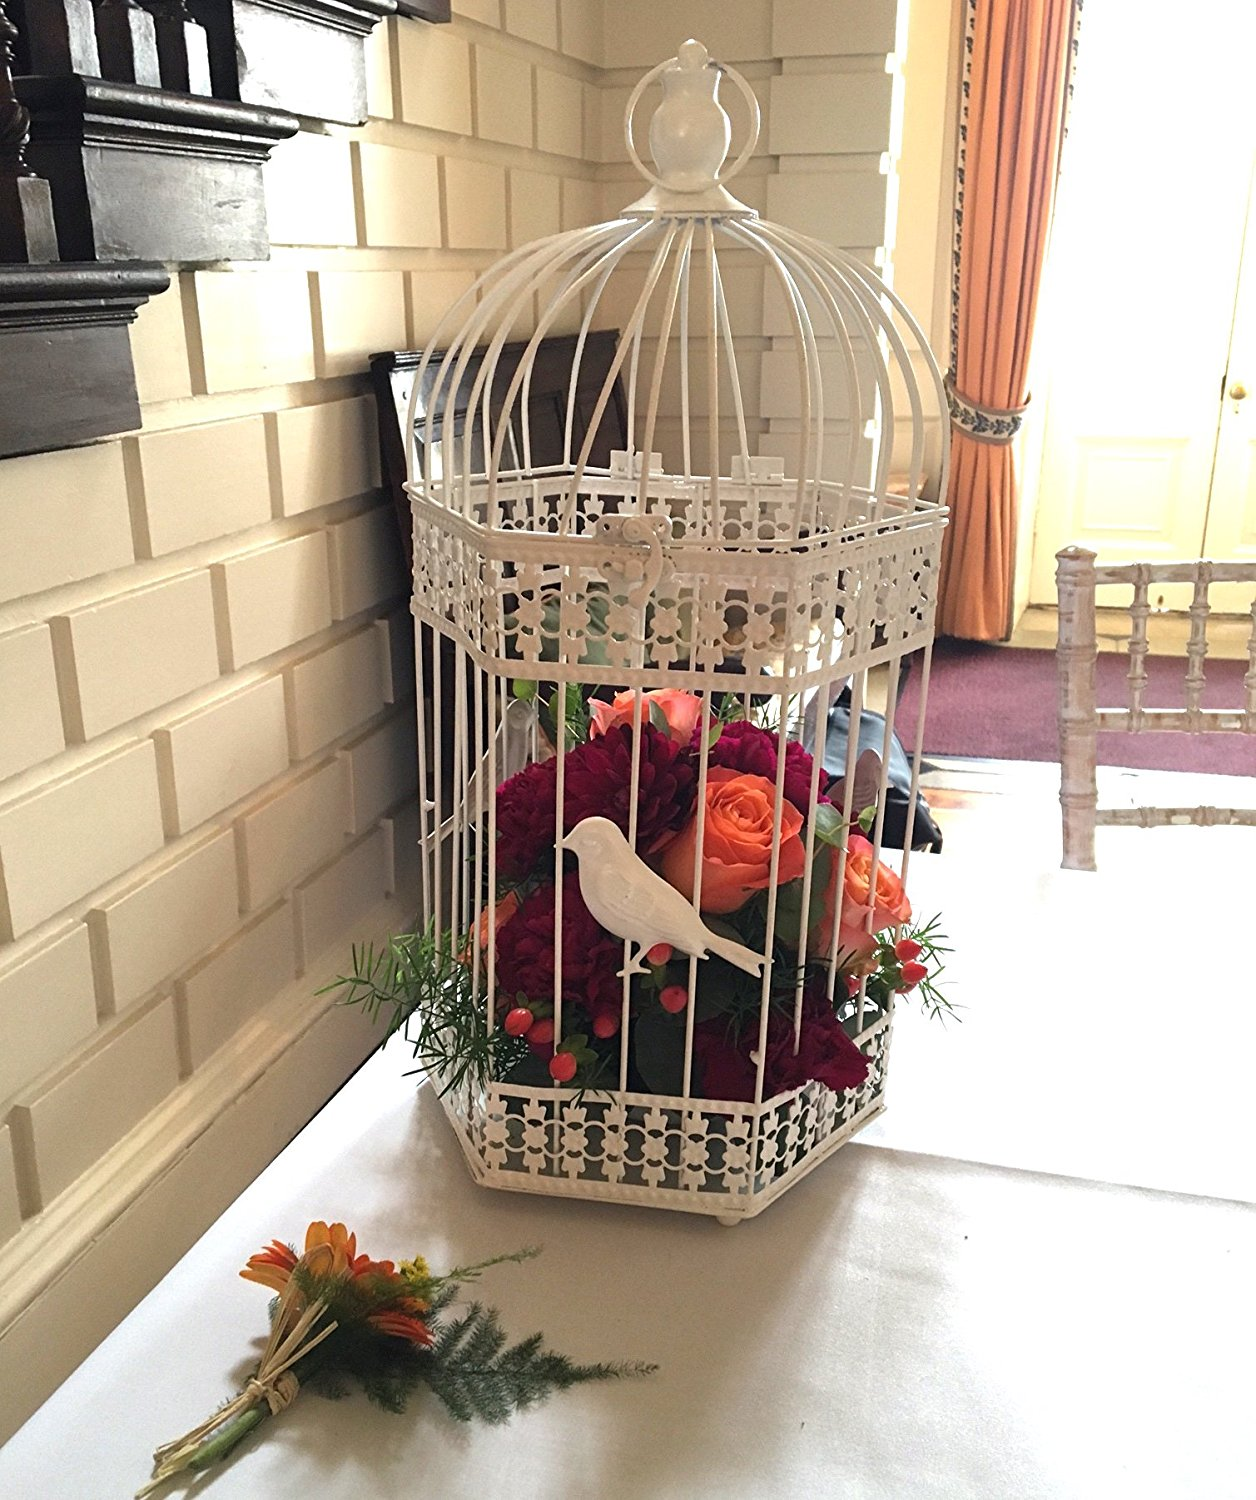 large vintage bird cage wedding decorations table centrepieces ivory ebay. Black Bedroom Furniture Sets. Home Design Ideas